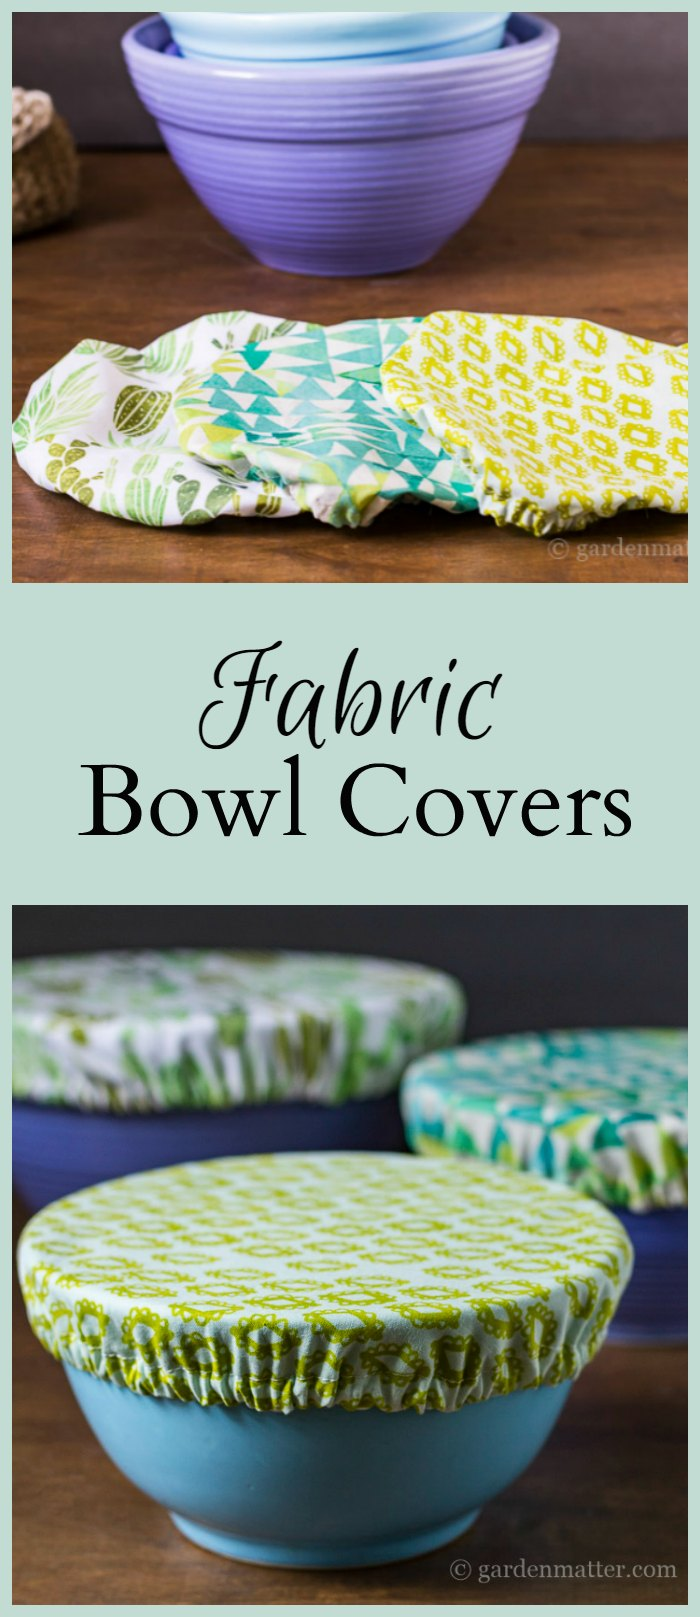 Learn how to make pretty fabric bowl covers to protect your food as an alternative to plastic wrap. A great housewarming present